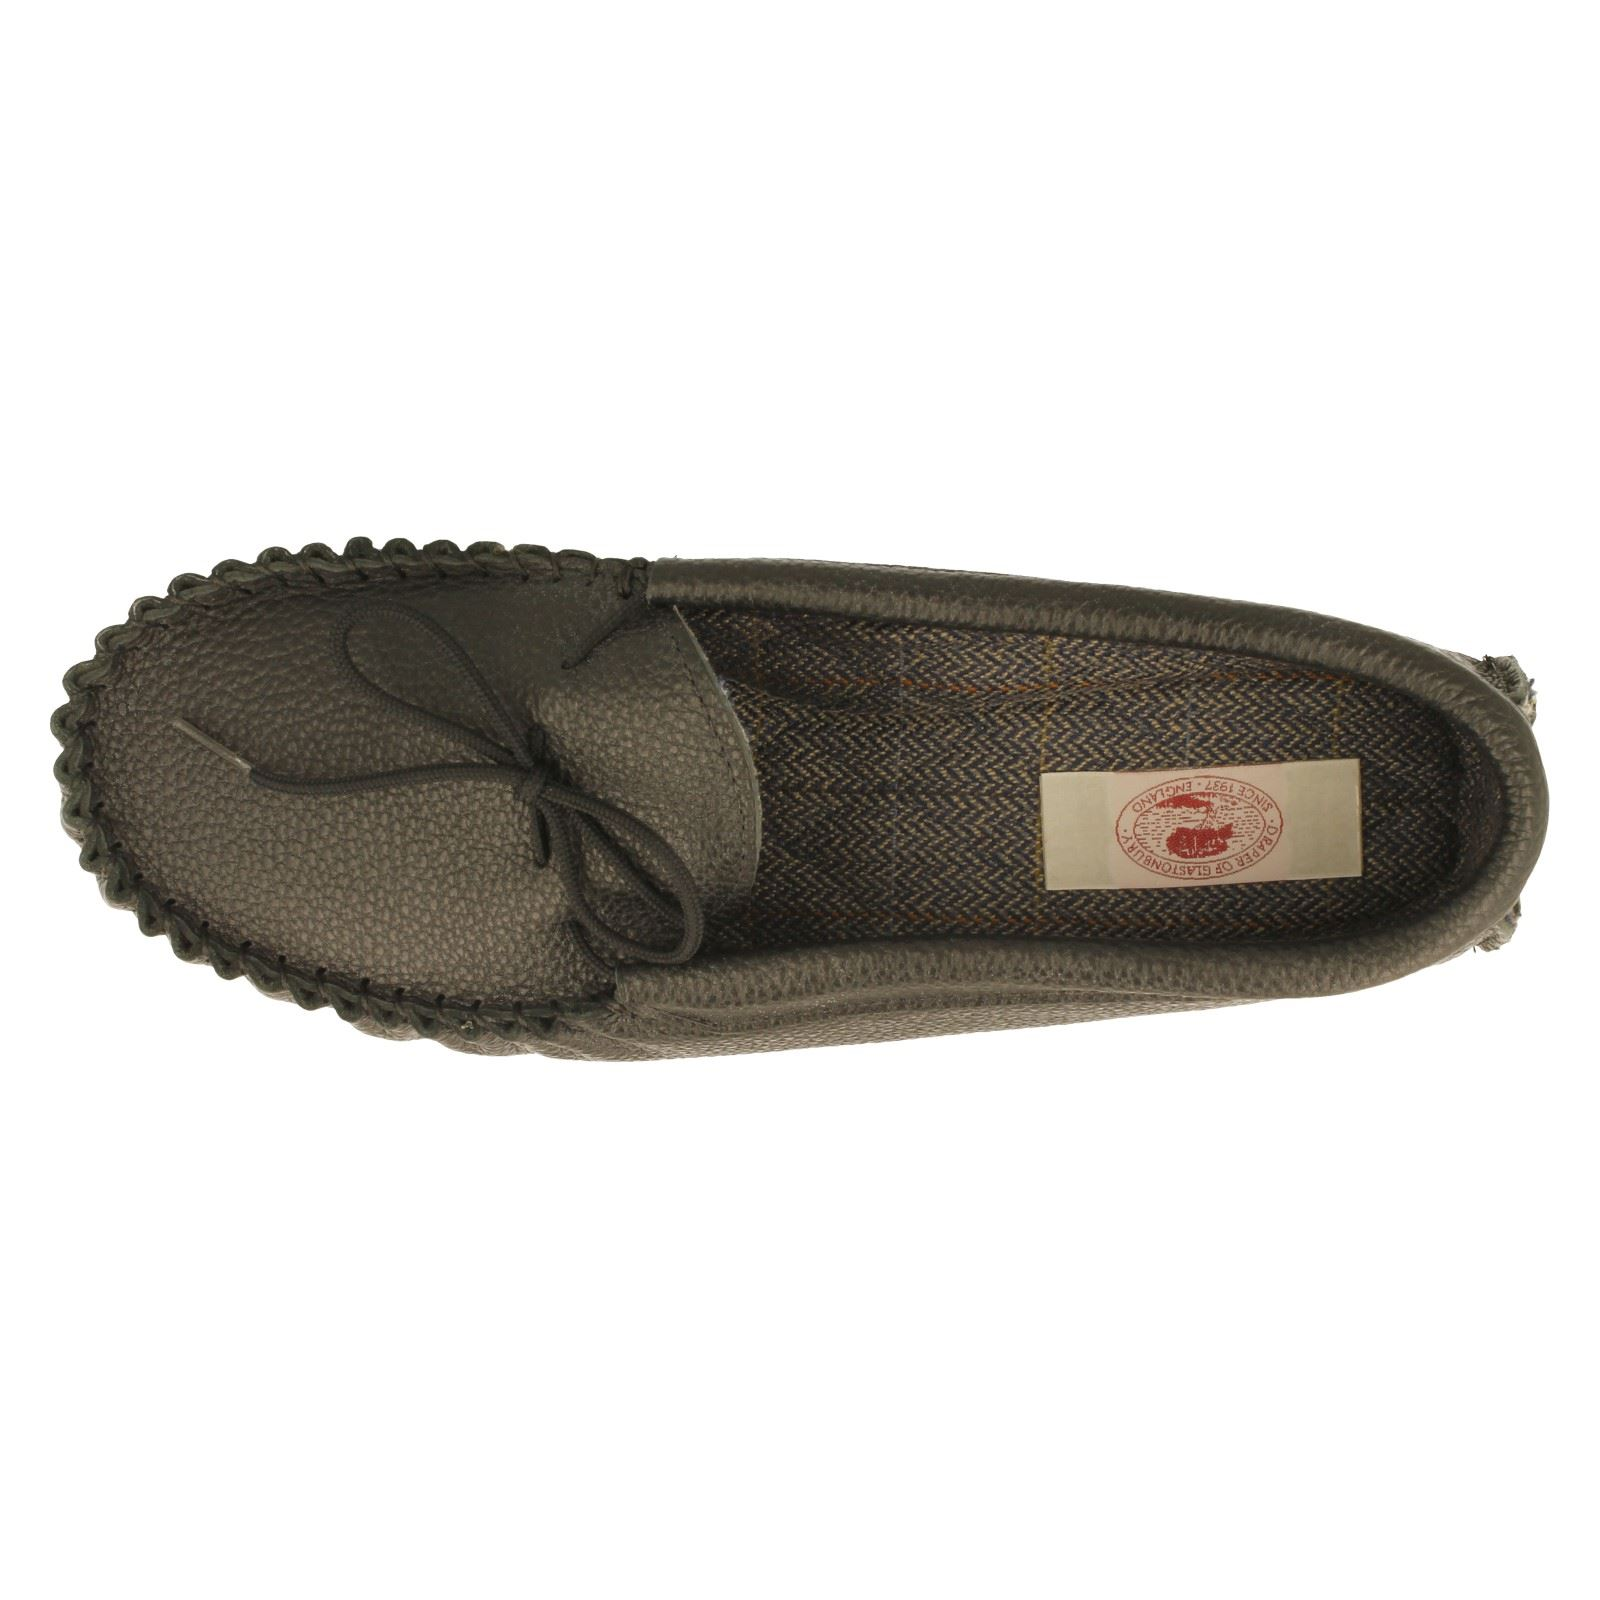 Mens Draper Moccasin Slippers The Style Michael-W